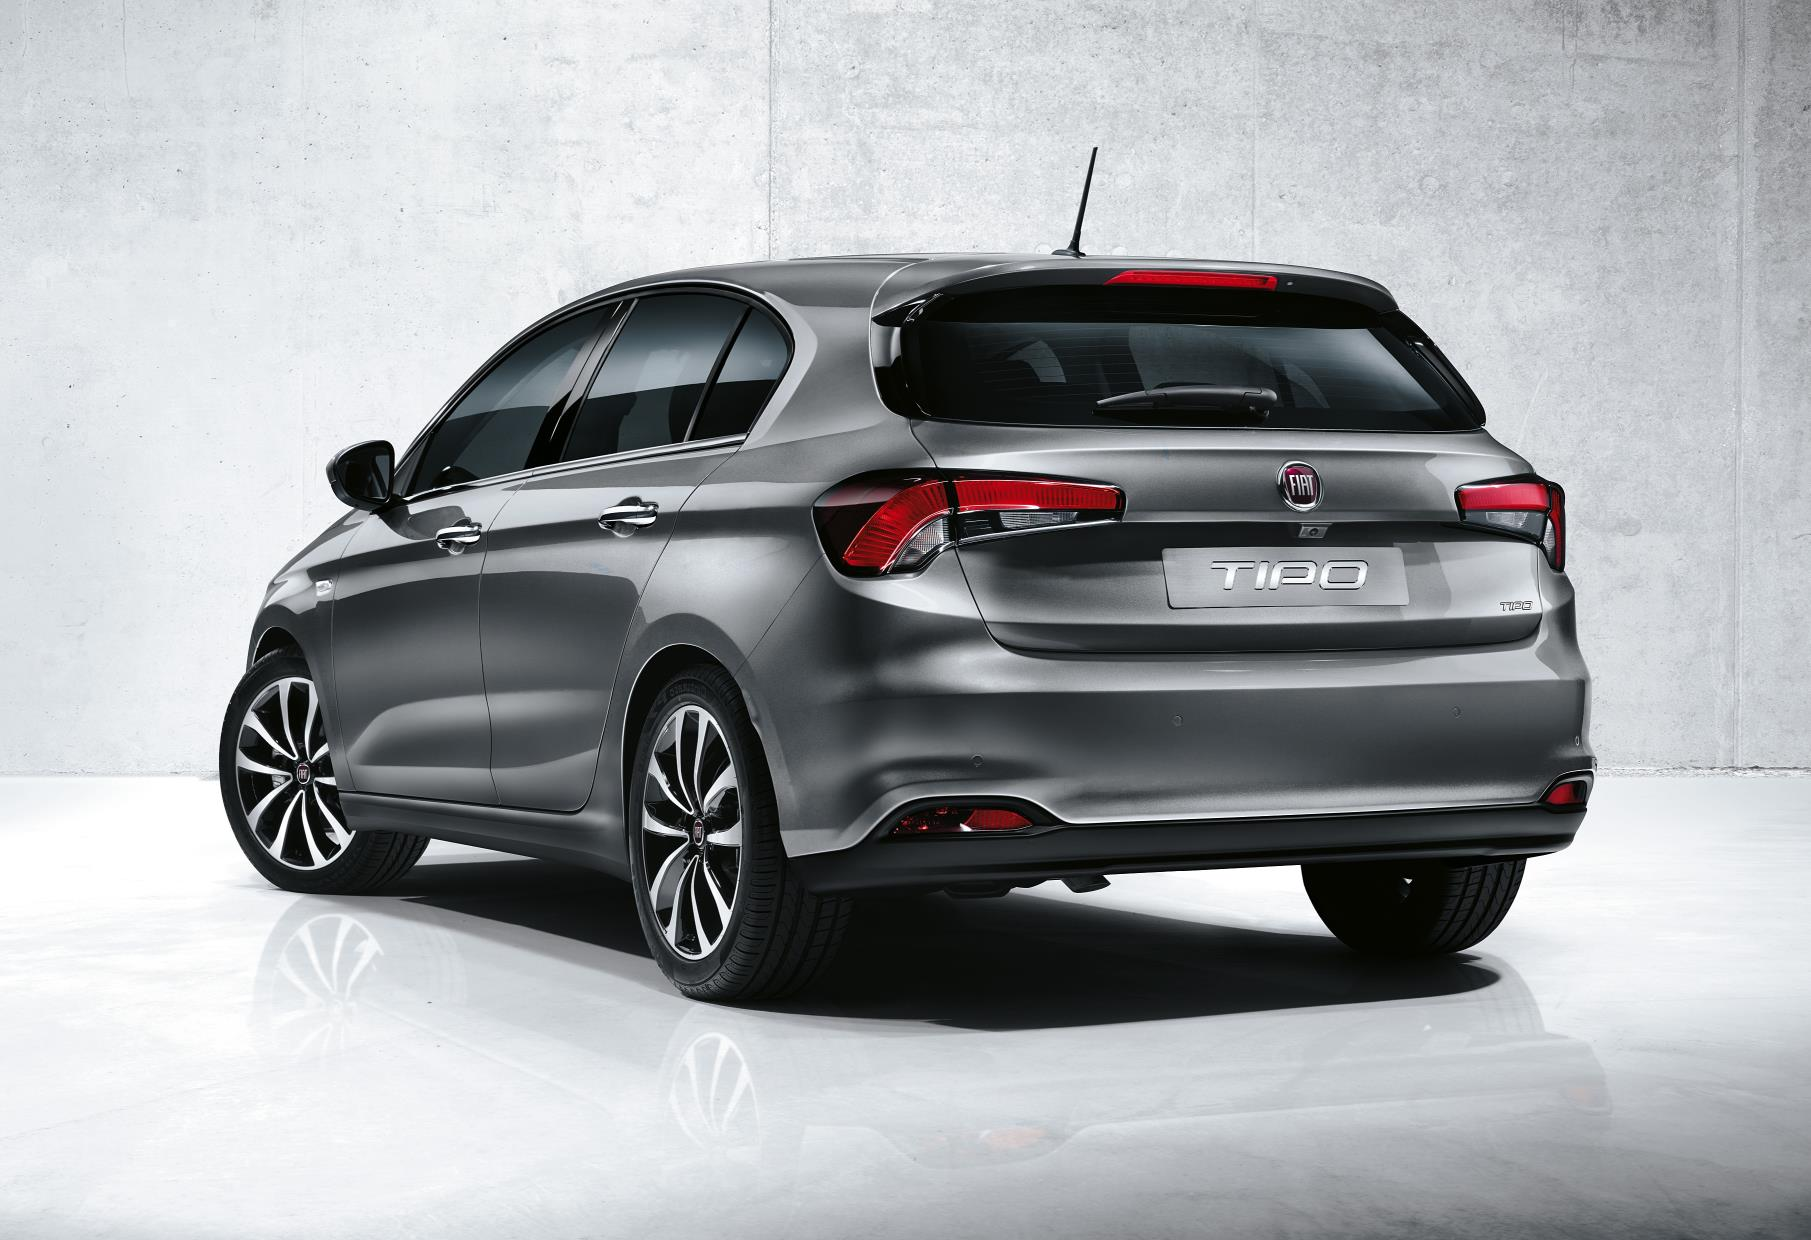 2016 Fiat 500 Abarth >> 2016 Fiat Tipo Hatchback and Station Wagon Priced in the UK - autoevolution